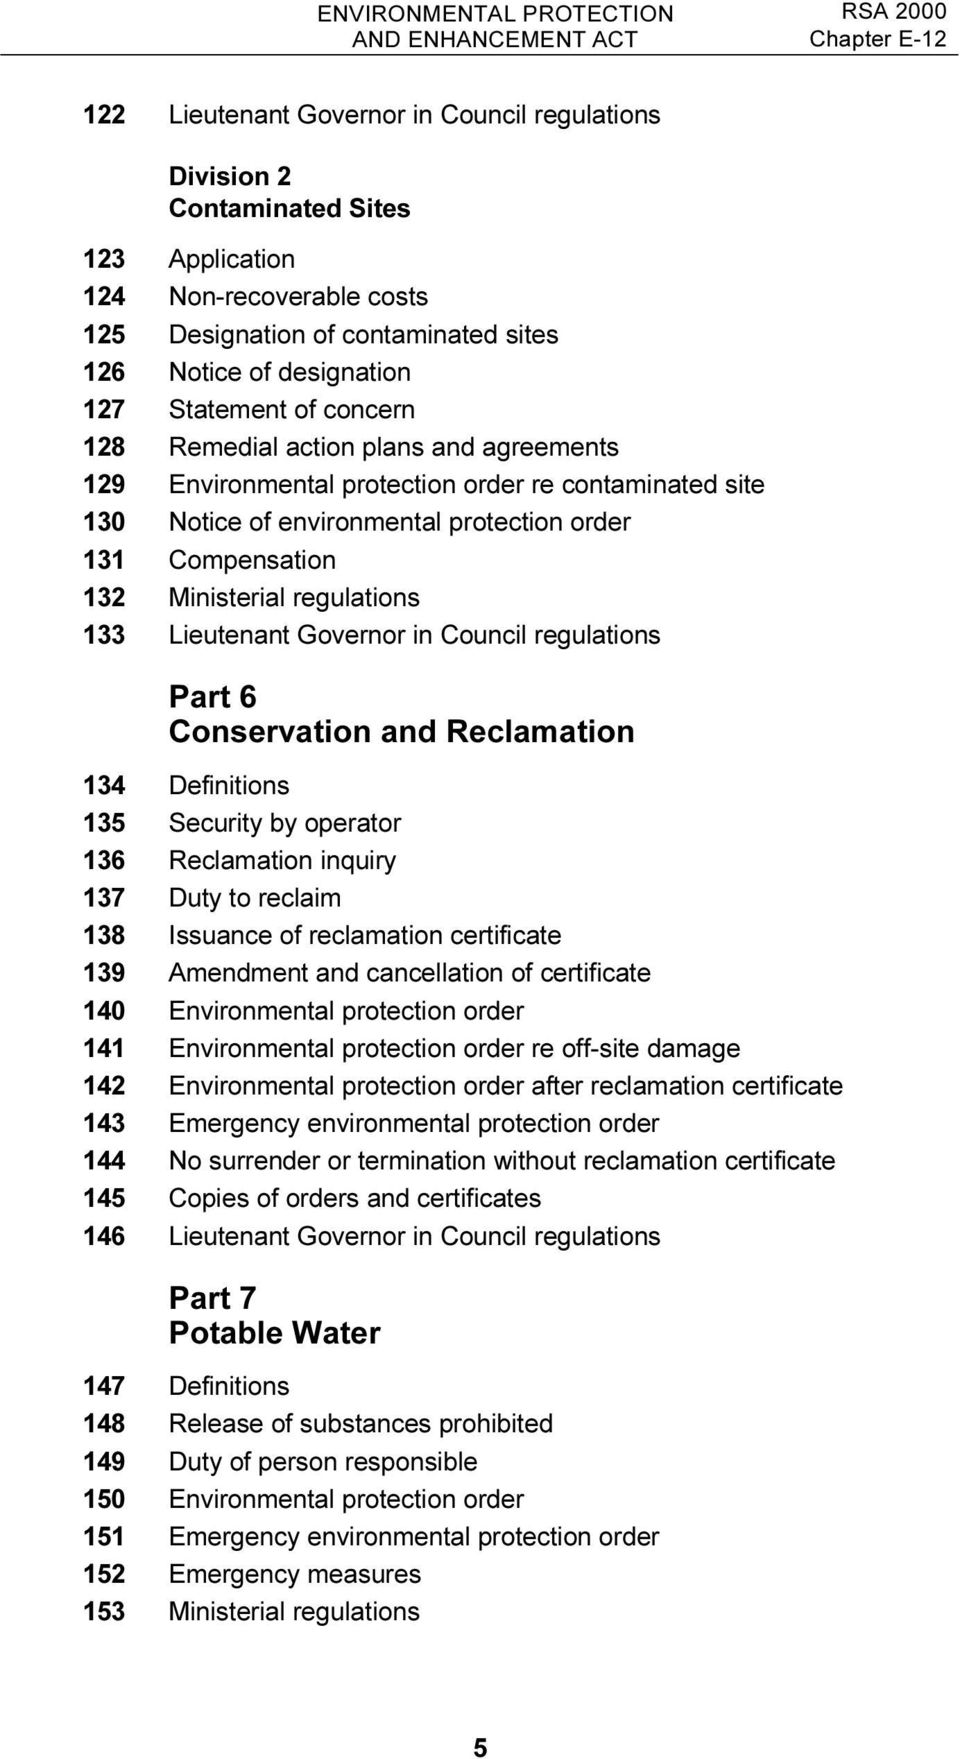 Ministerial regulations 133 Lieutenant Governor in Council regulations Part 6 Conservation and Reclamation 134 Definitions 135 Security by operator 136 Reclamation inquiry 137 Duty to reclaim 138